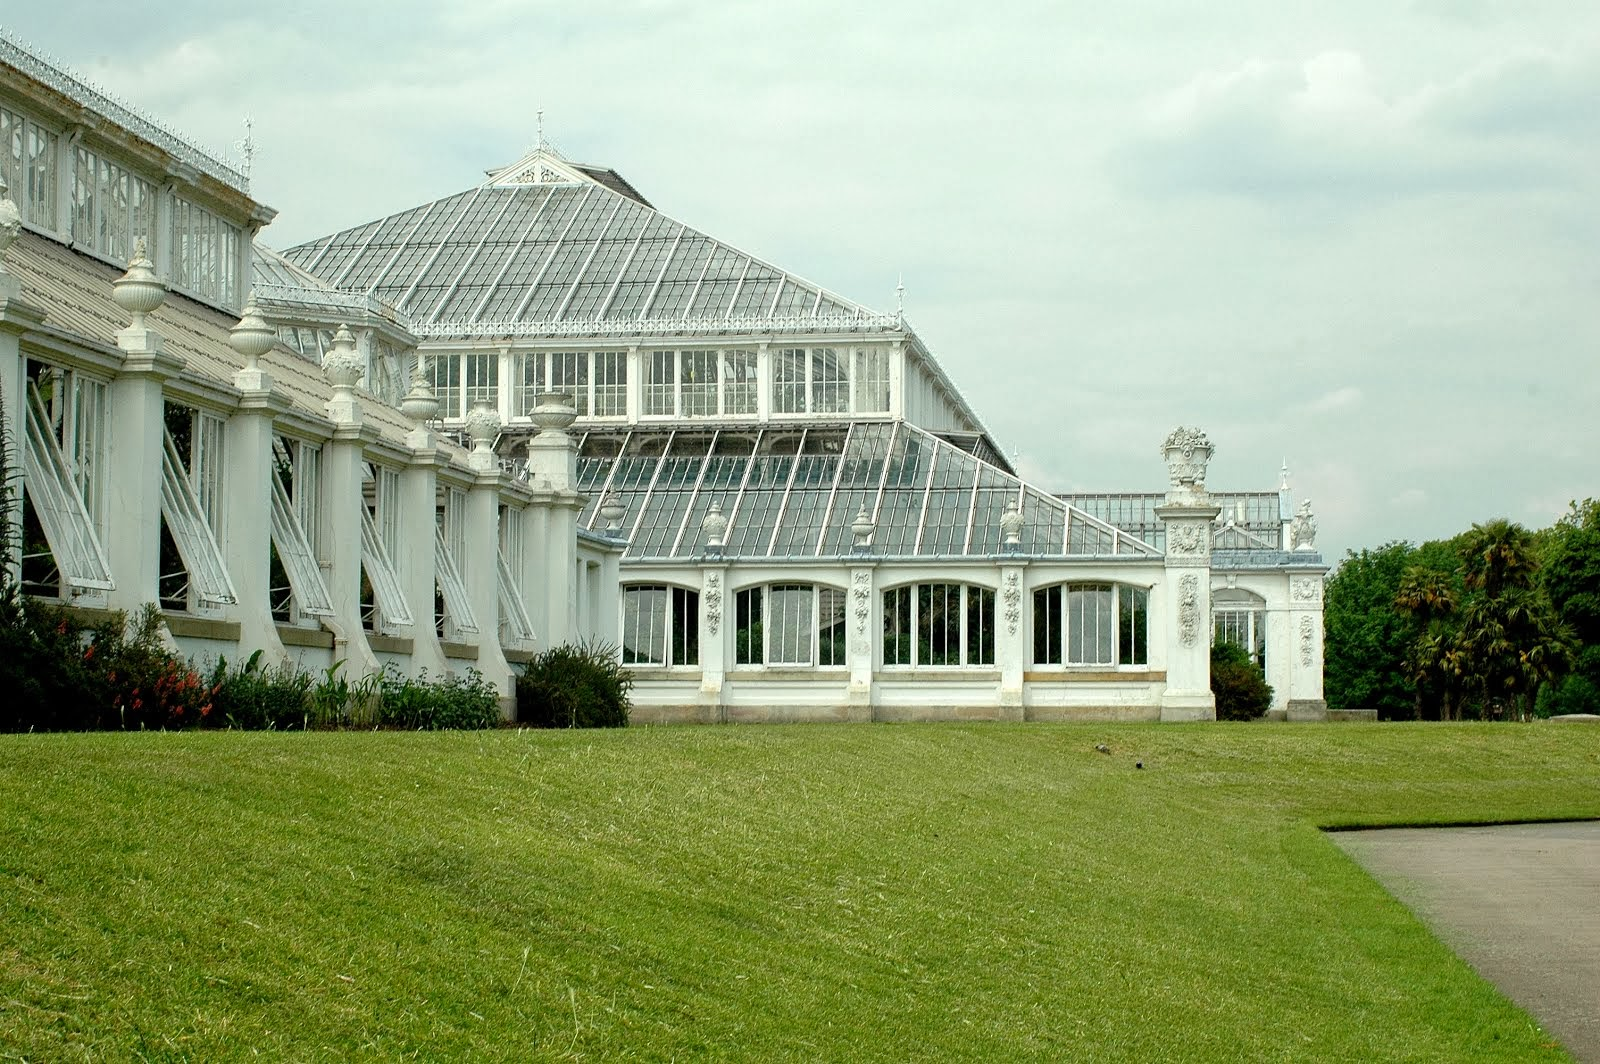 Royal Botanic Gardens, Kew, Richmond upon Thames